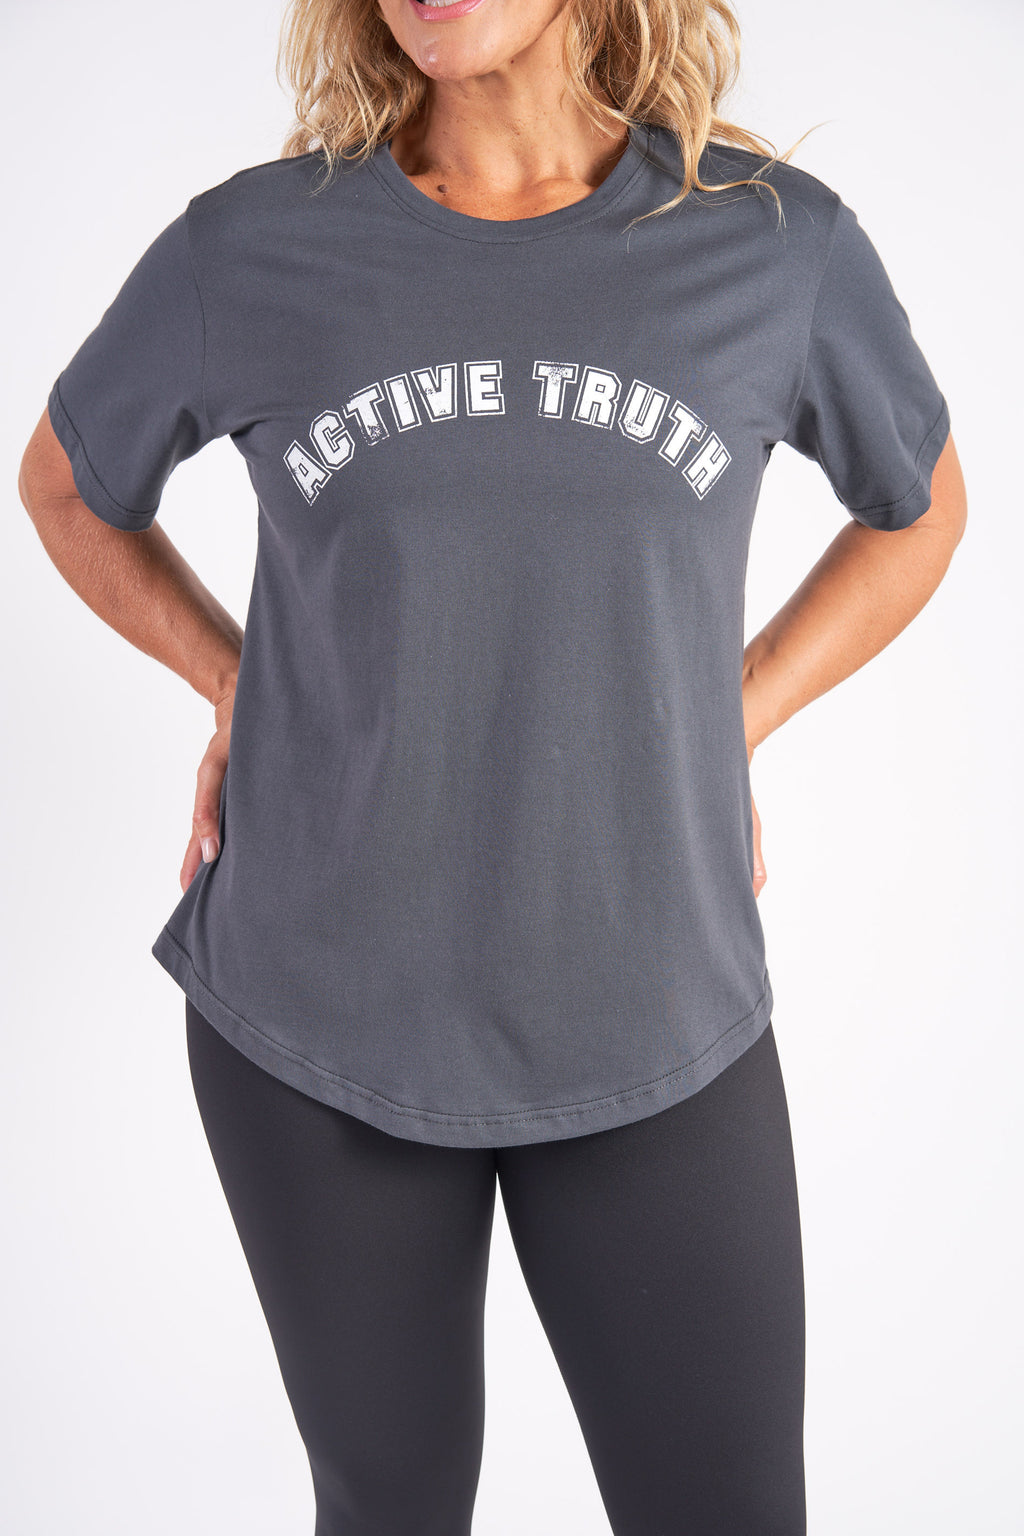 activewear-relaxed-crew-tee-organic-cotton-charcoal-large-front2